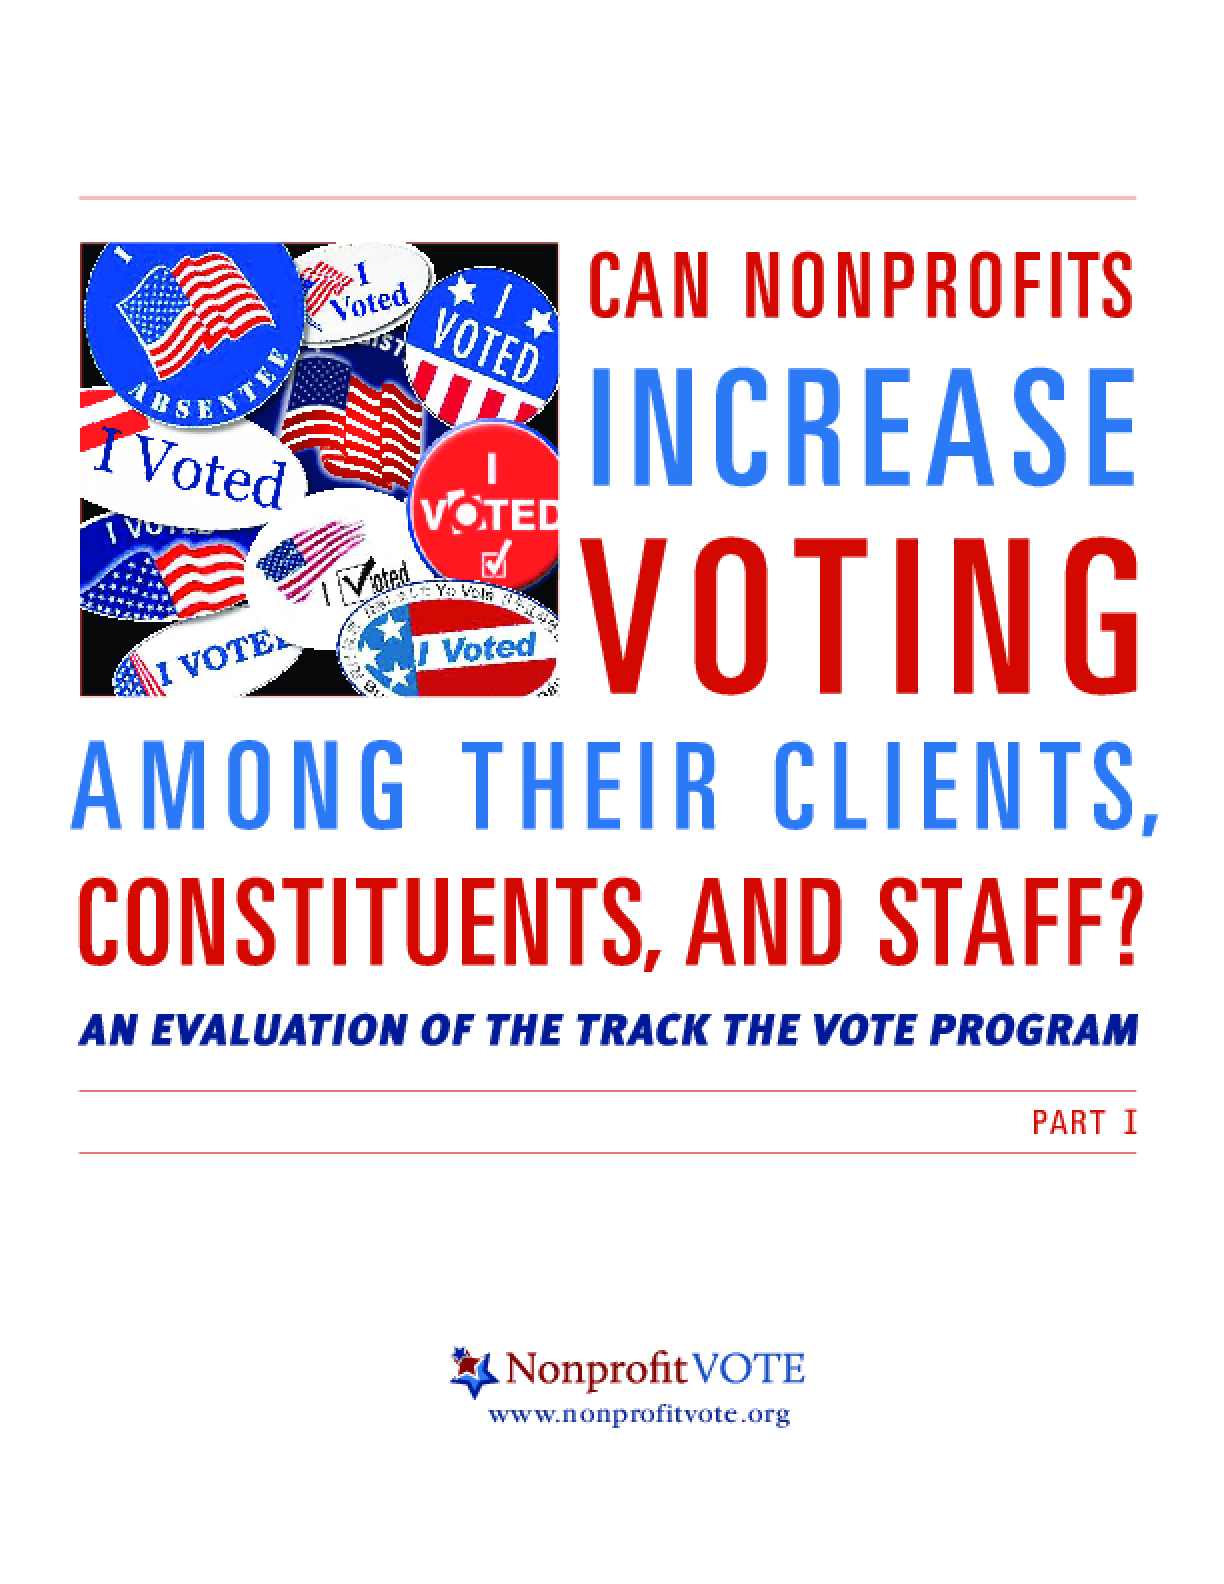 Can Nonprofits Increase Voting Among Their Clients,Constituents, and Staff? An Evaluation of the Track the Vote Program, Part 1